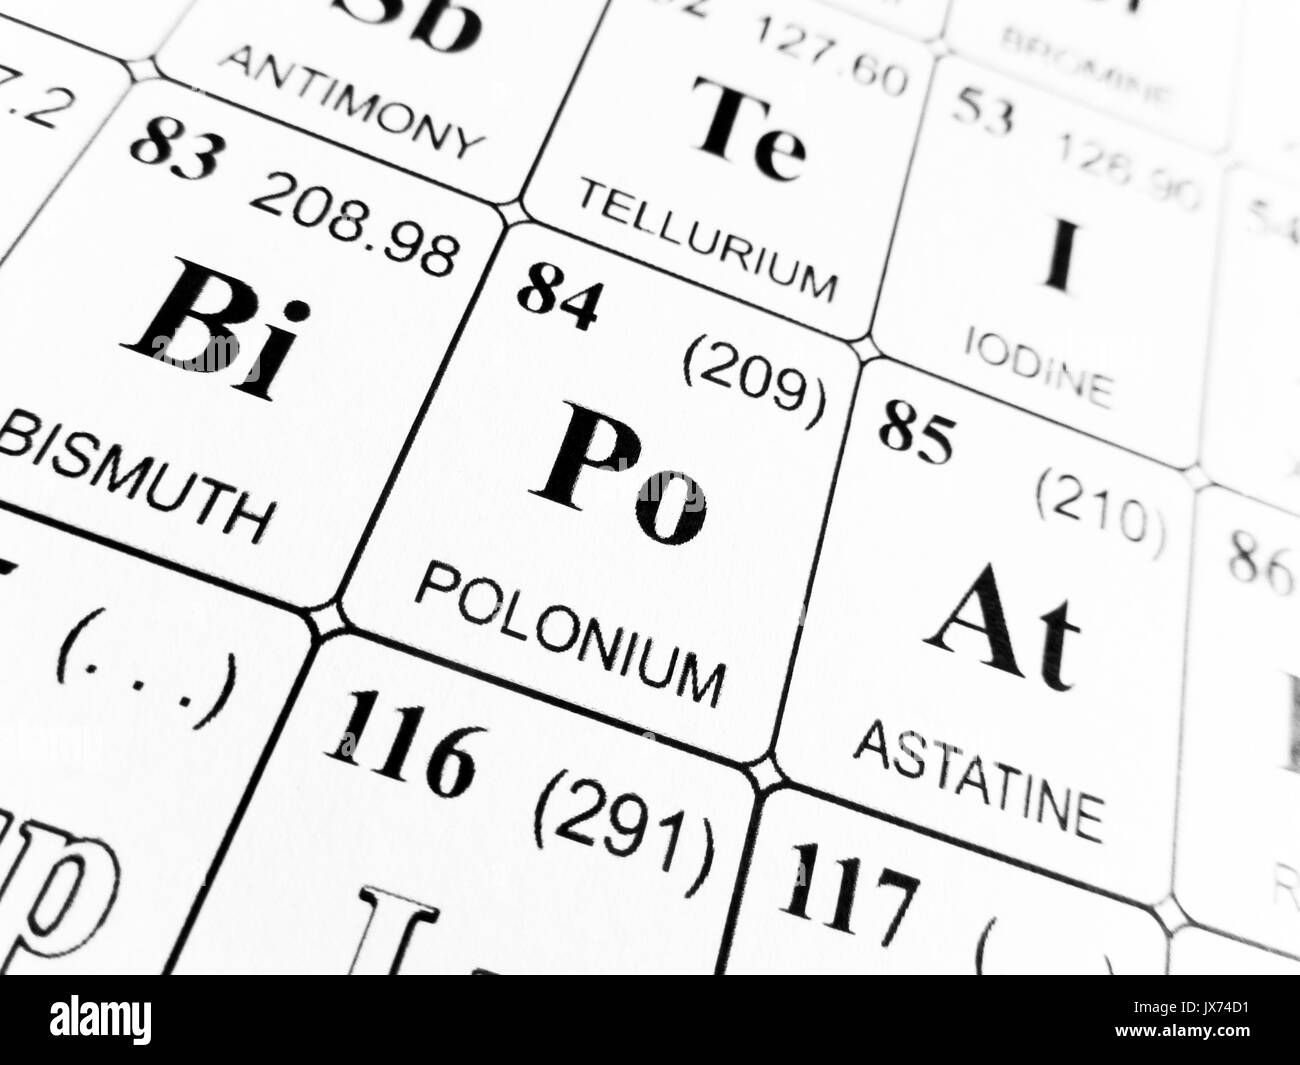 Pete mckee periodic table gallery periodic table images periodic table polonium image collections periodic table images pete mckee periodic table images periodic table images gamestrikefo Gallery